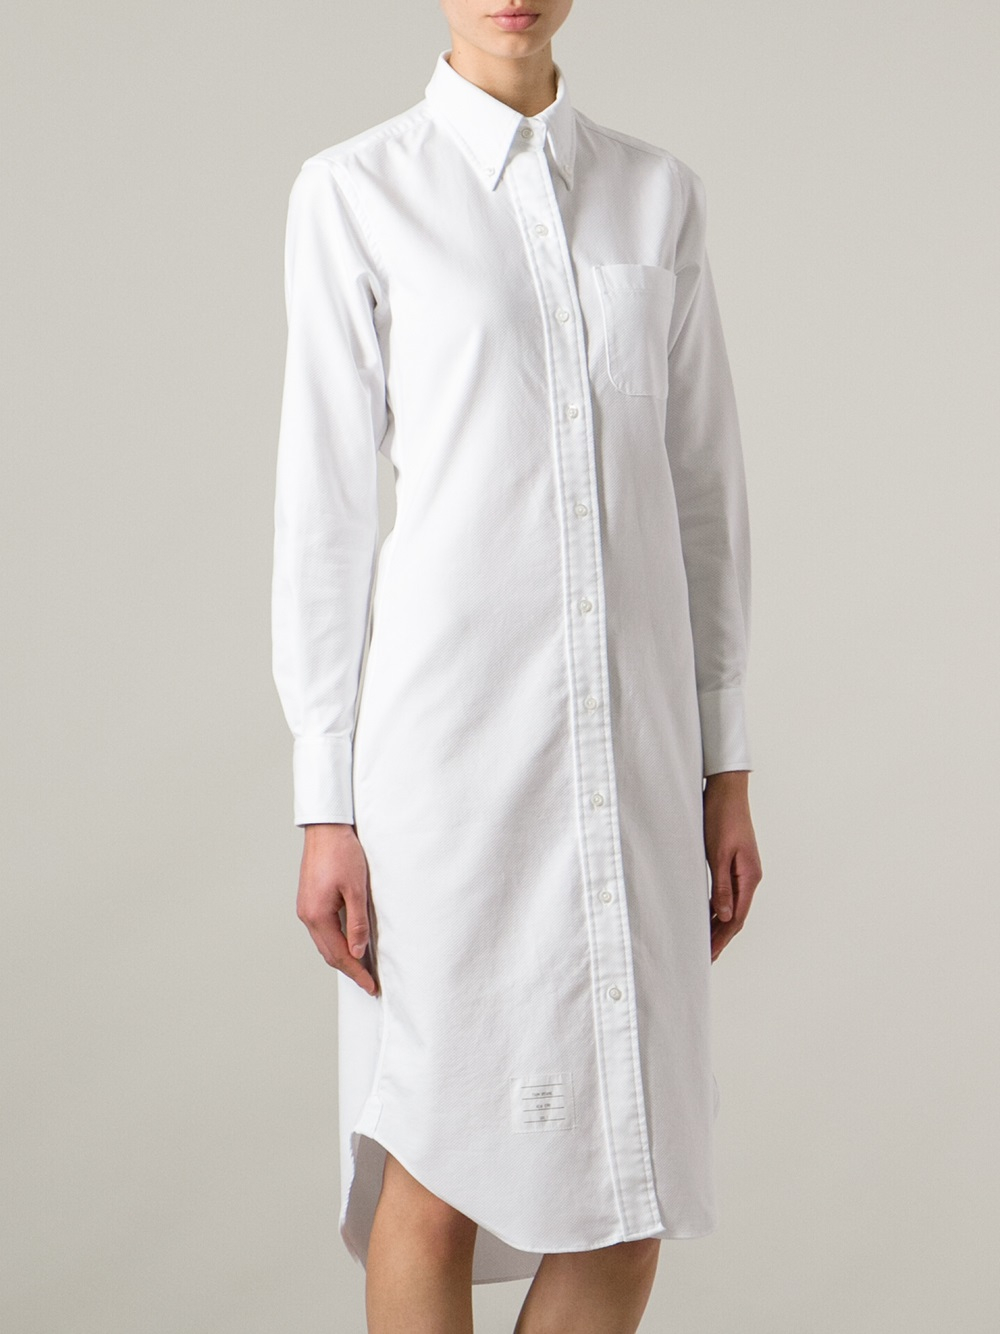 Lyst Thom Browne Knee Length Shirt Dress In White